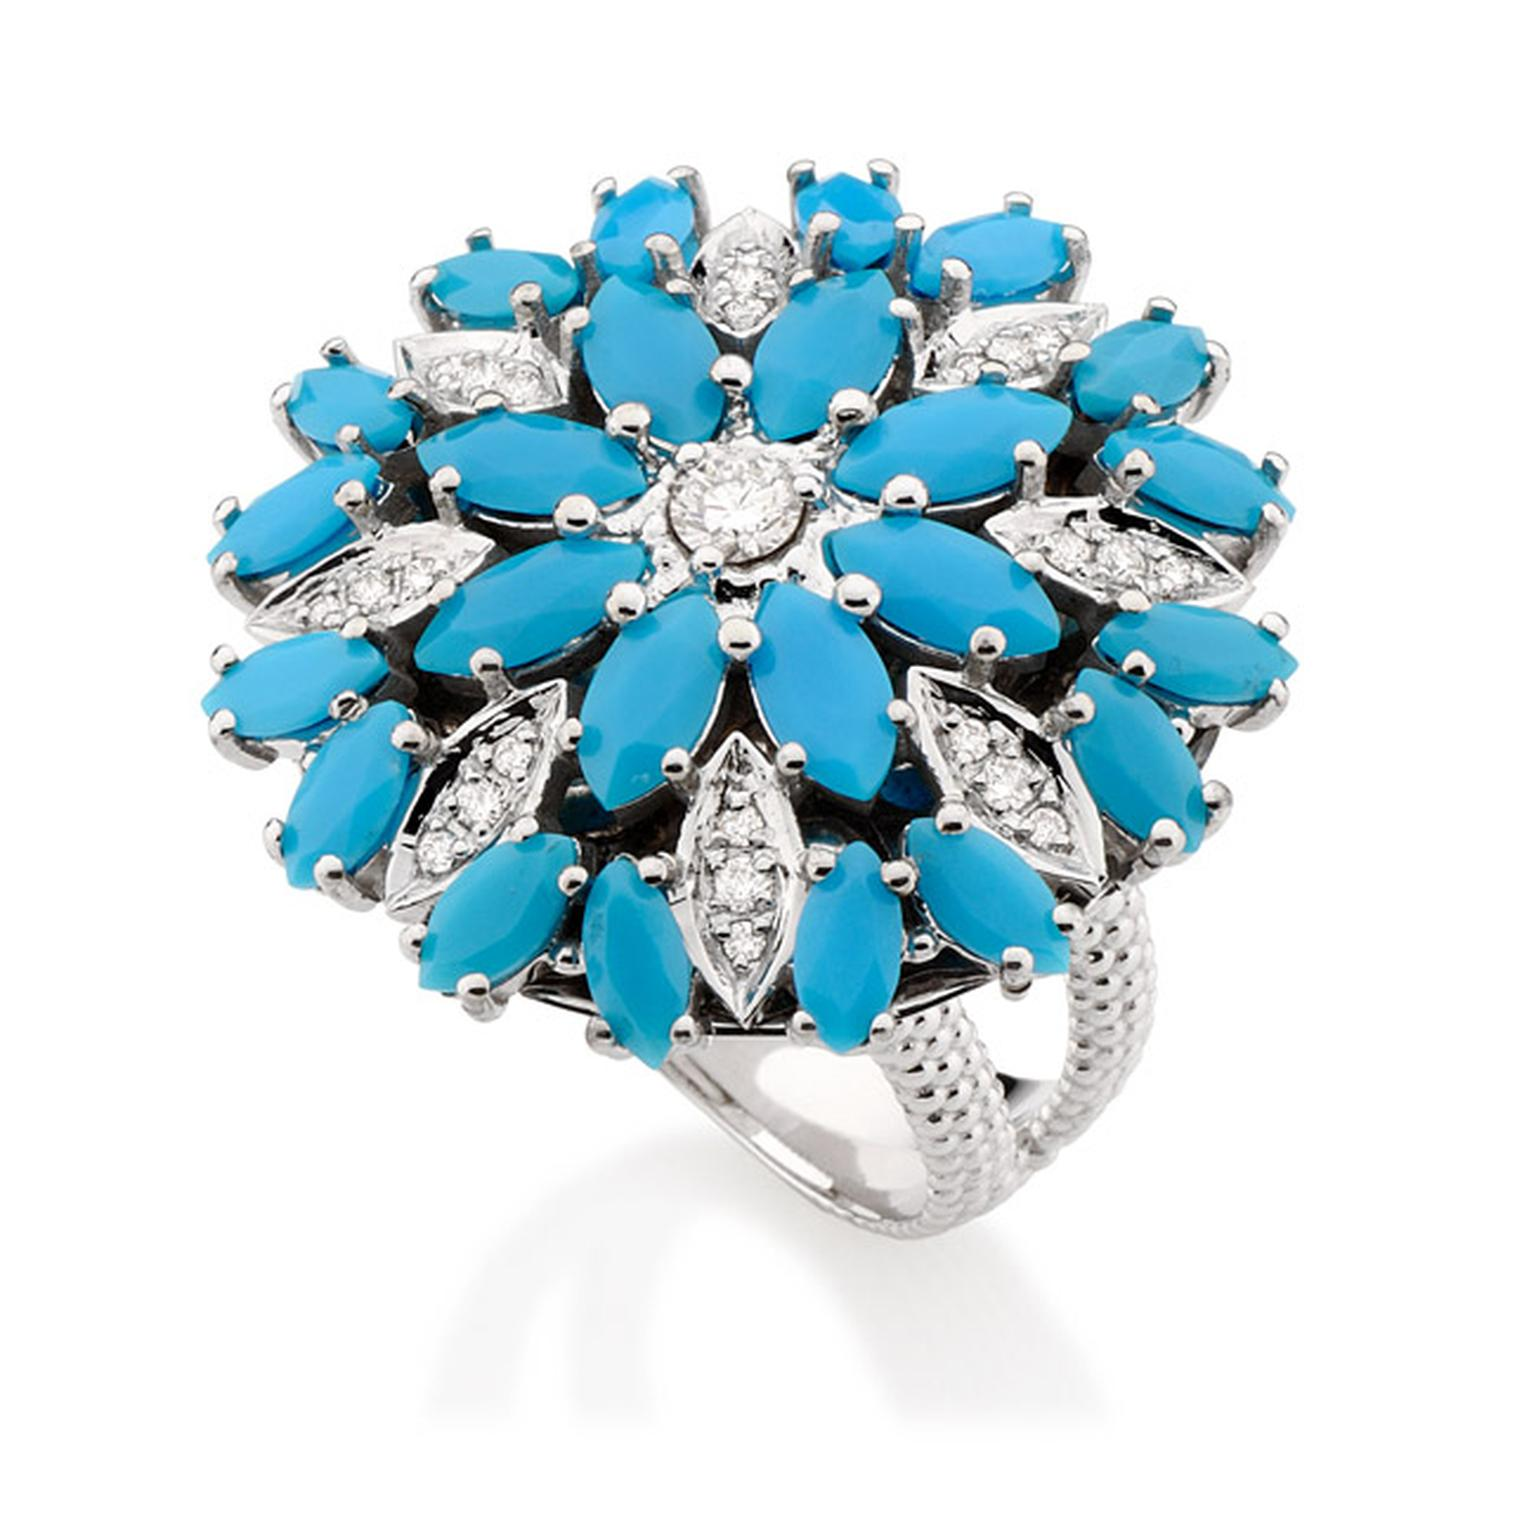 Carla-Amorim-Aquario-Ring-Main